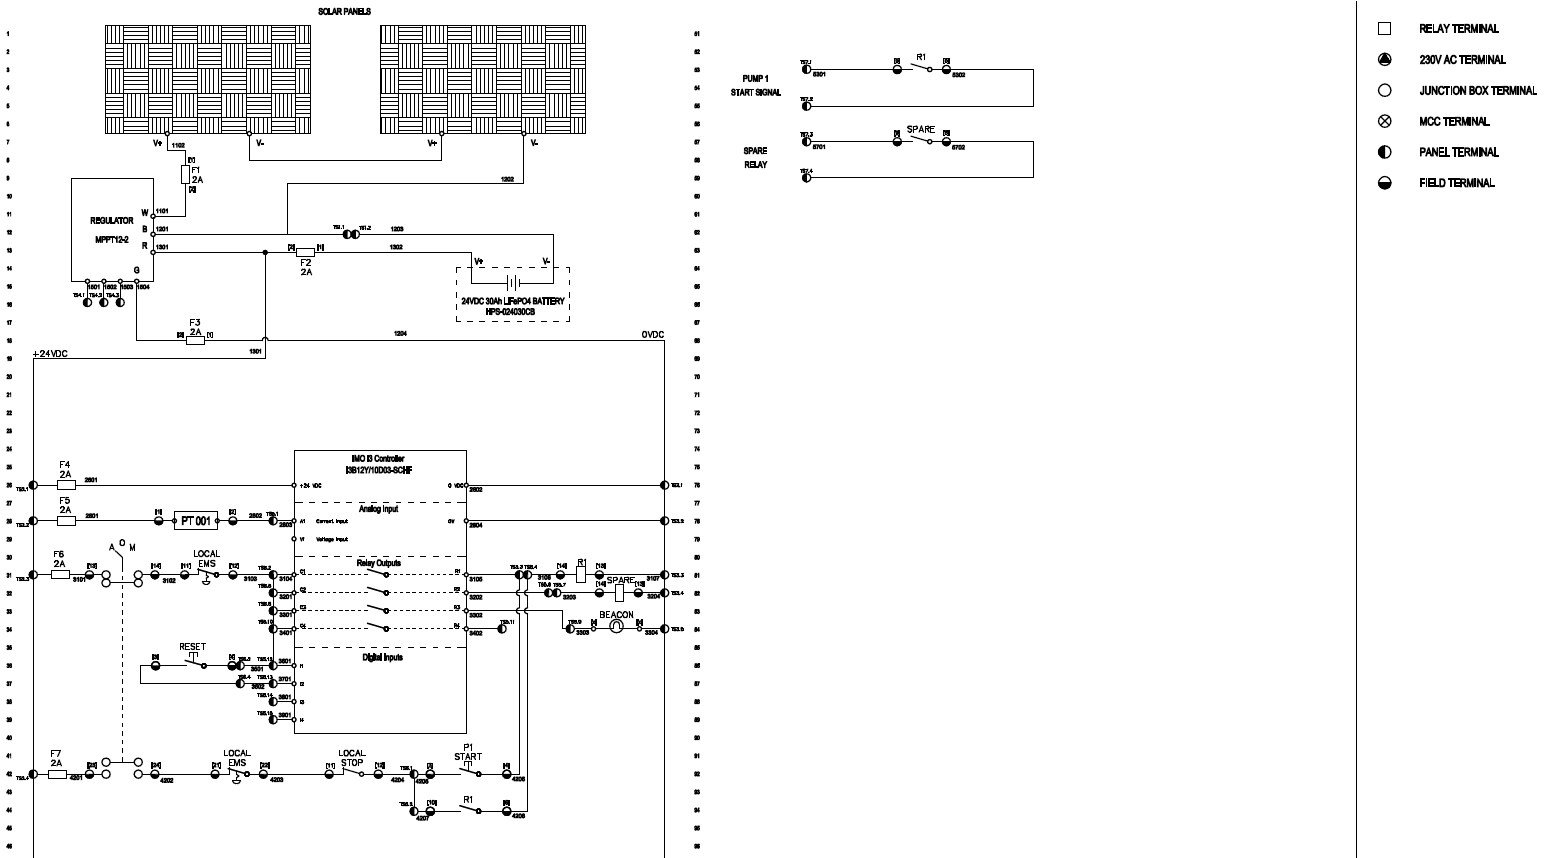 hight resolution of electrical schematics in autocad electrical get free image about wiring diagram electrical schematic cad drawing electrical schematic cad exercises